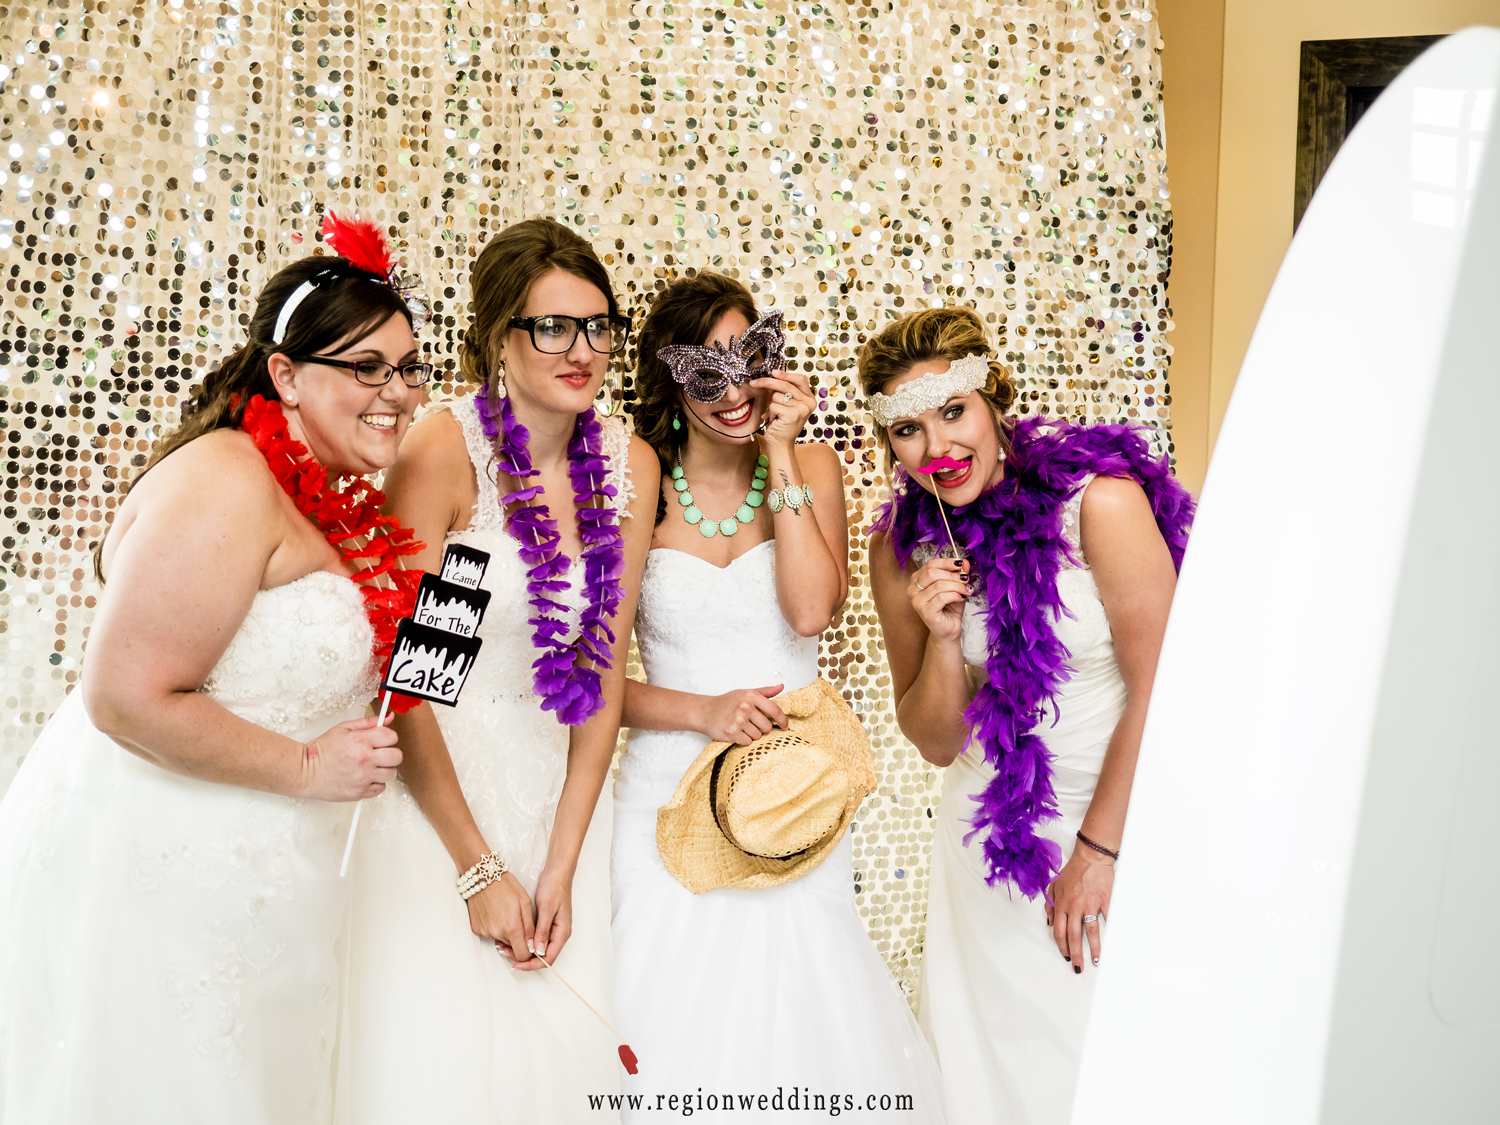 brides-photo-booth